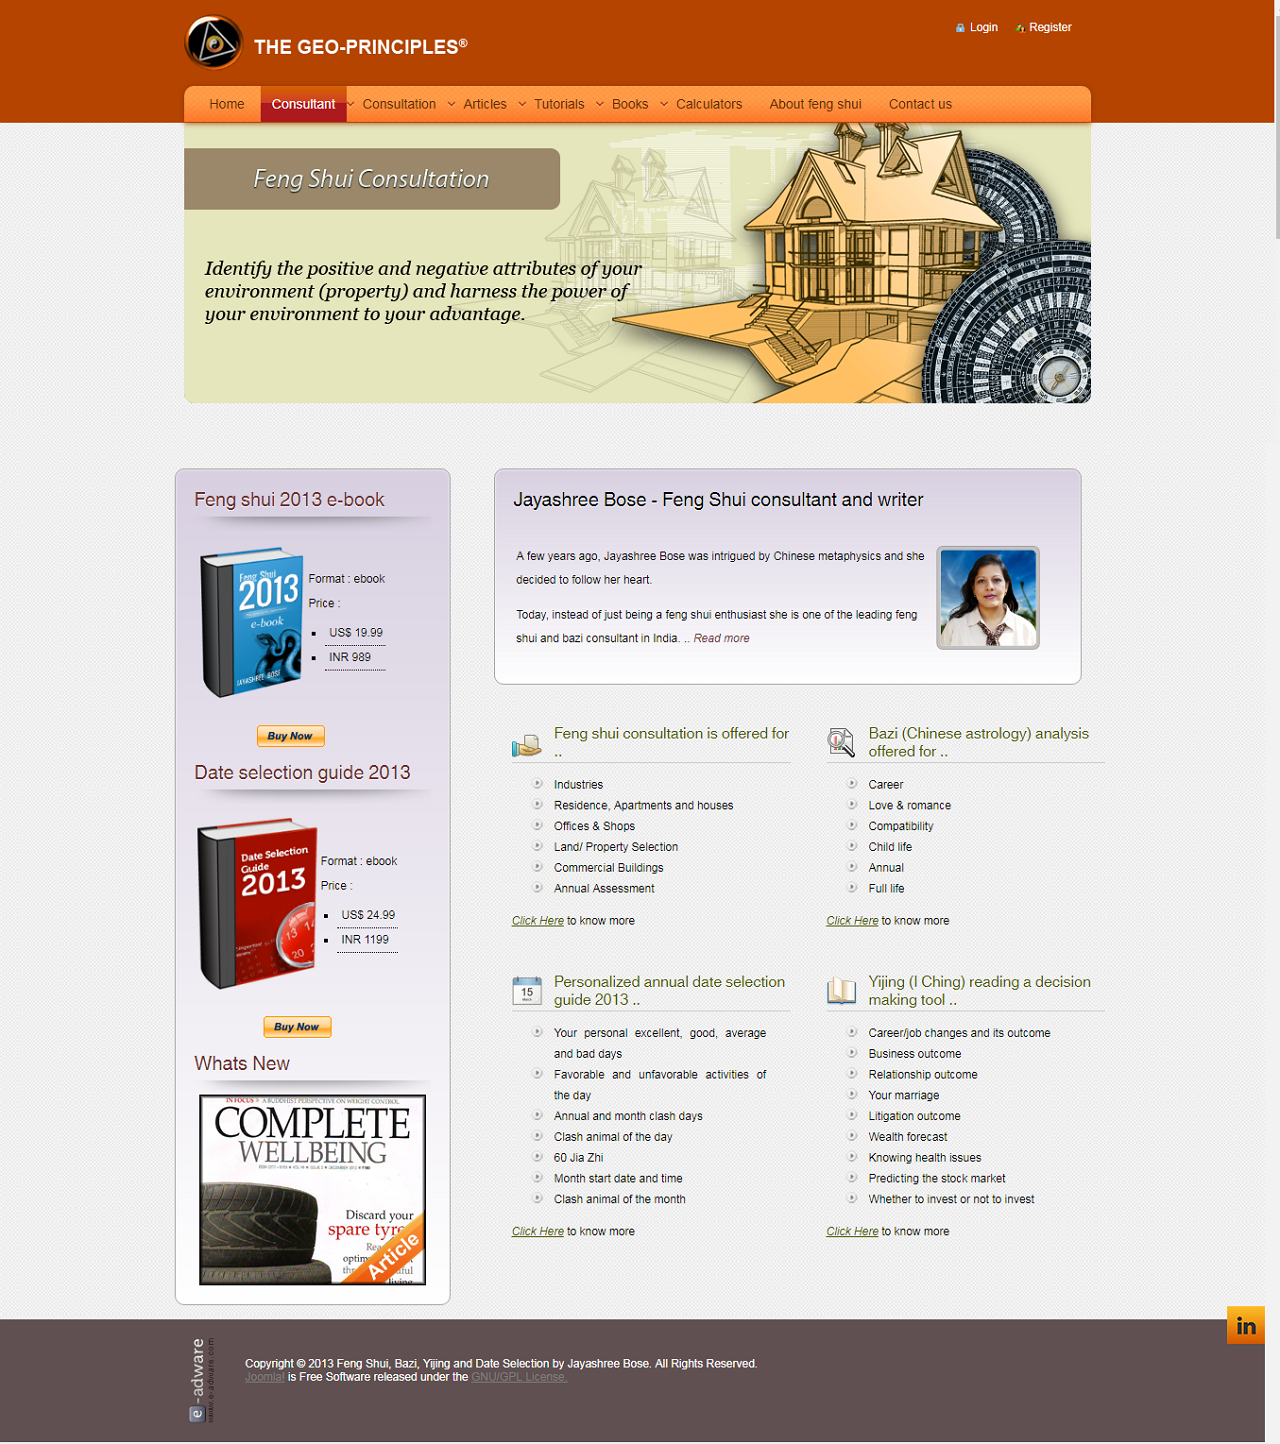 The Geo-Principles Website 2013